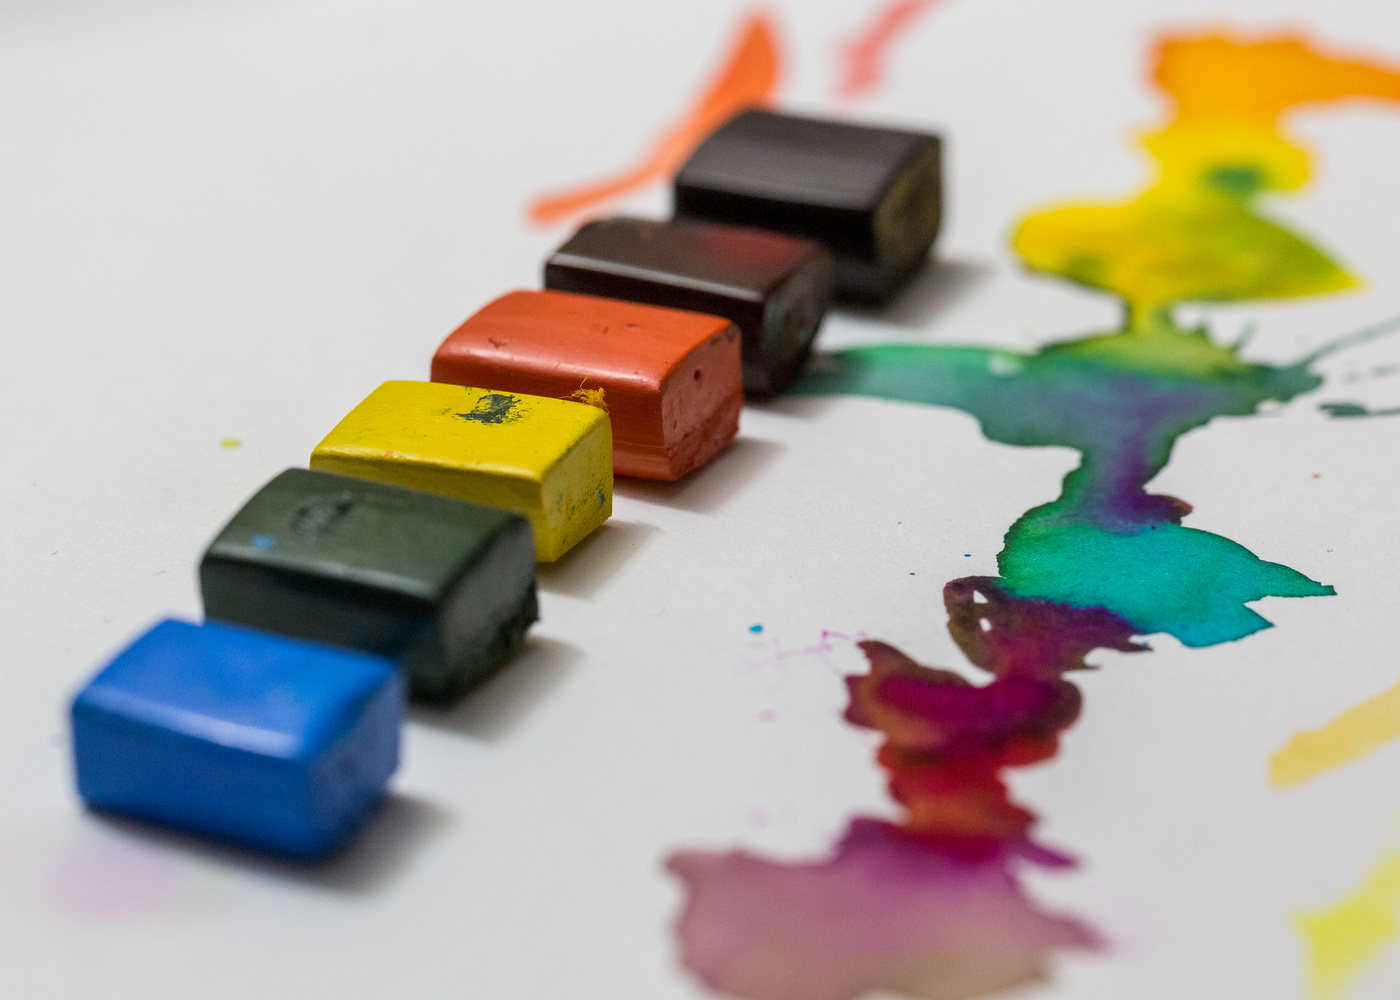 Watercolor Blocks by James Terry